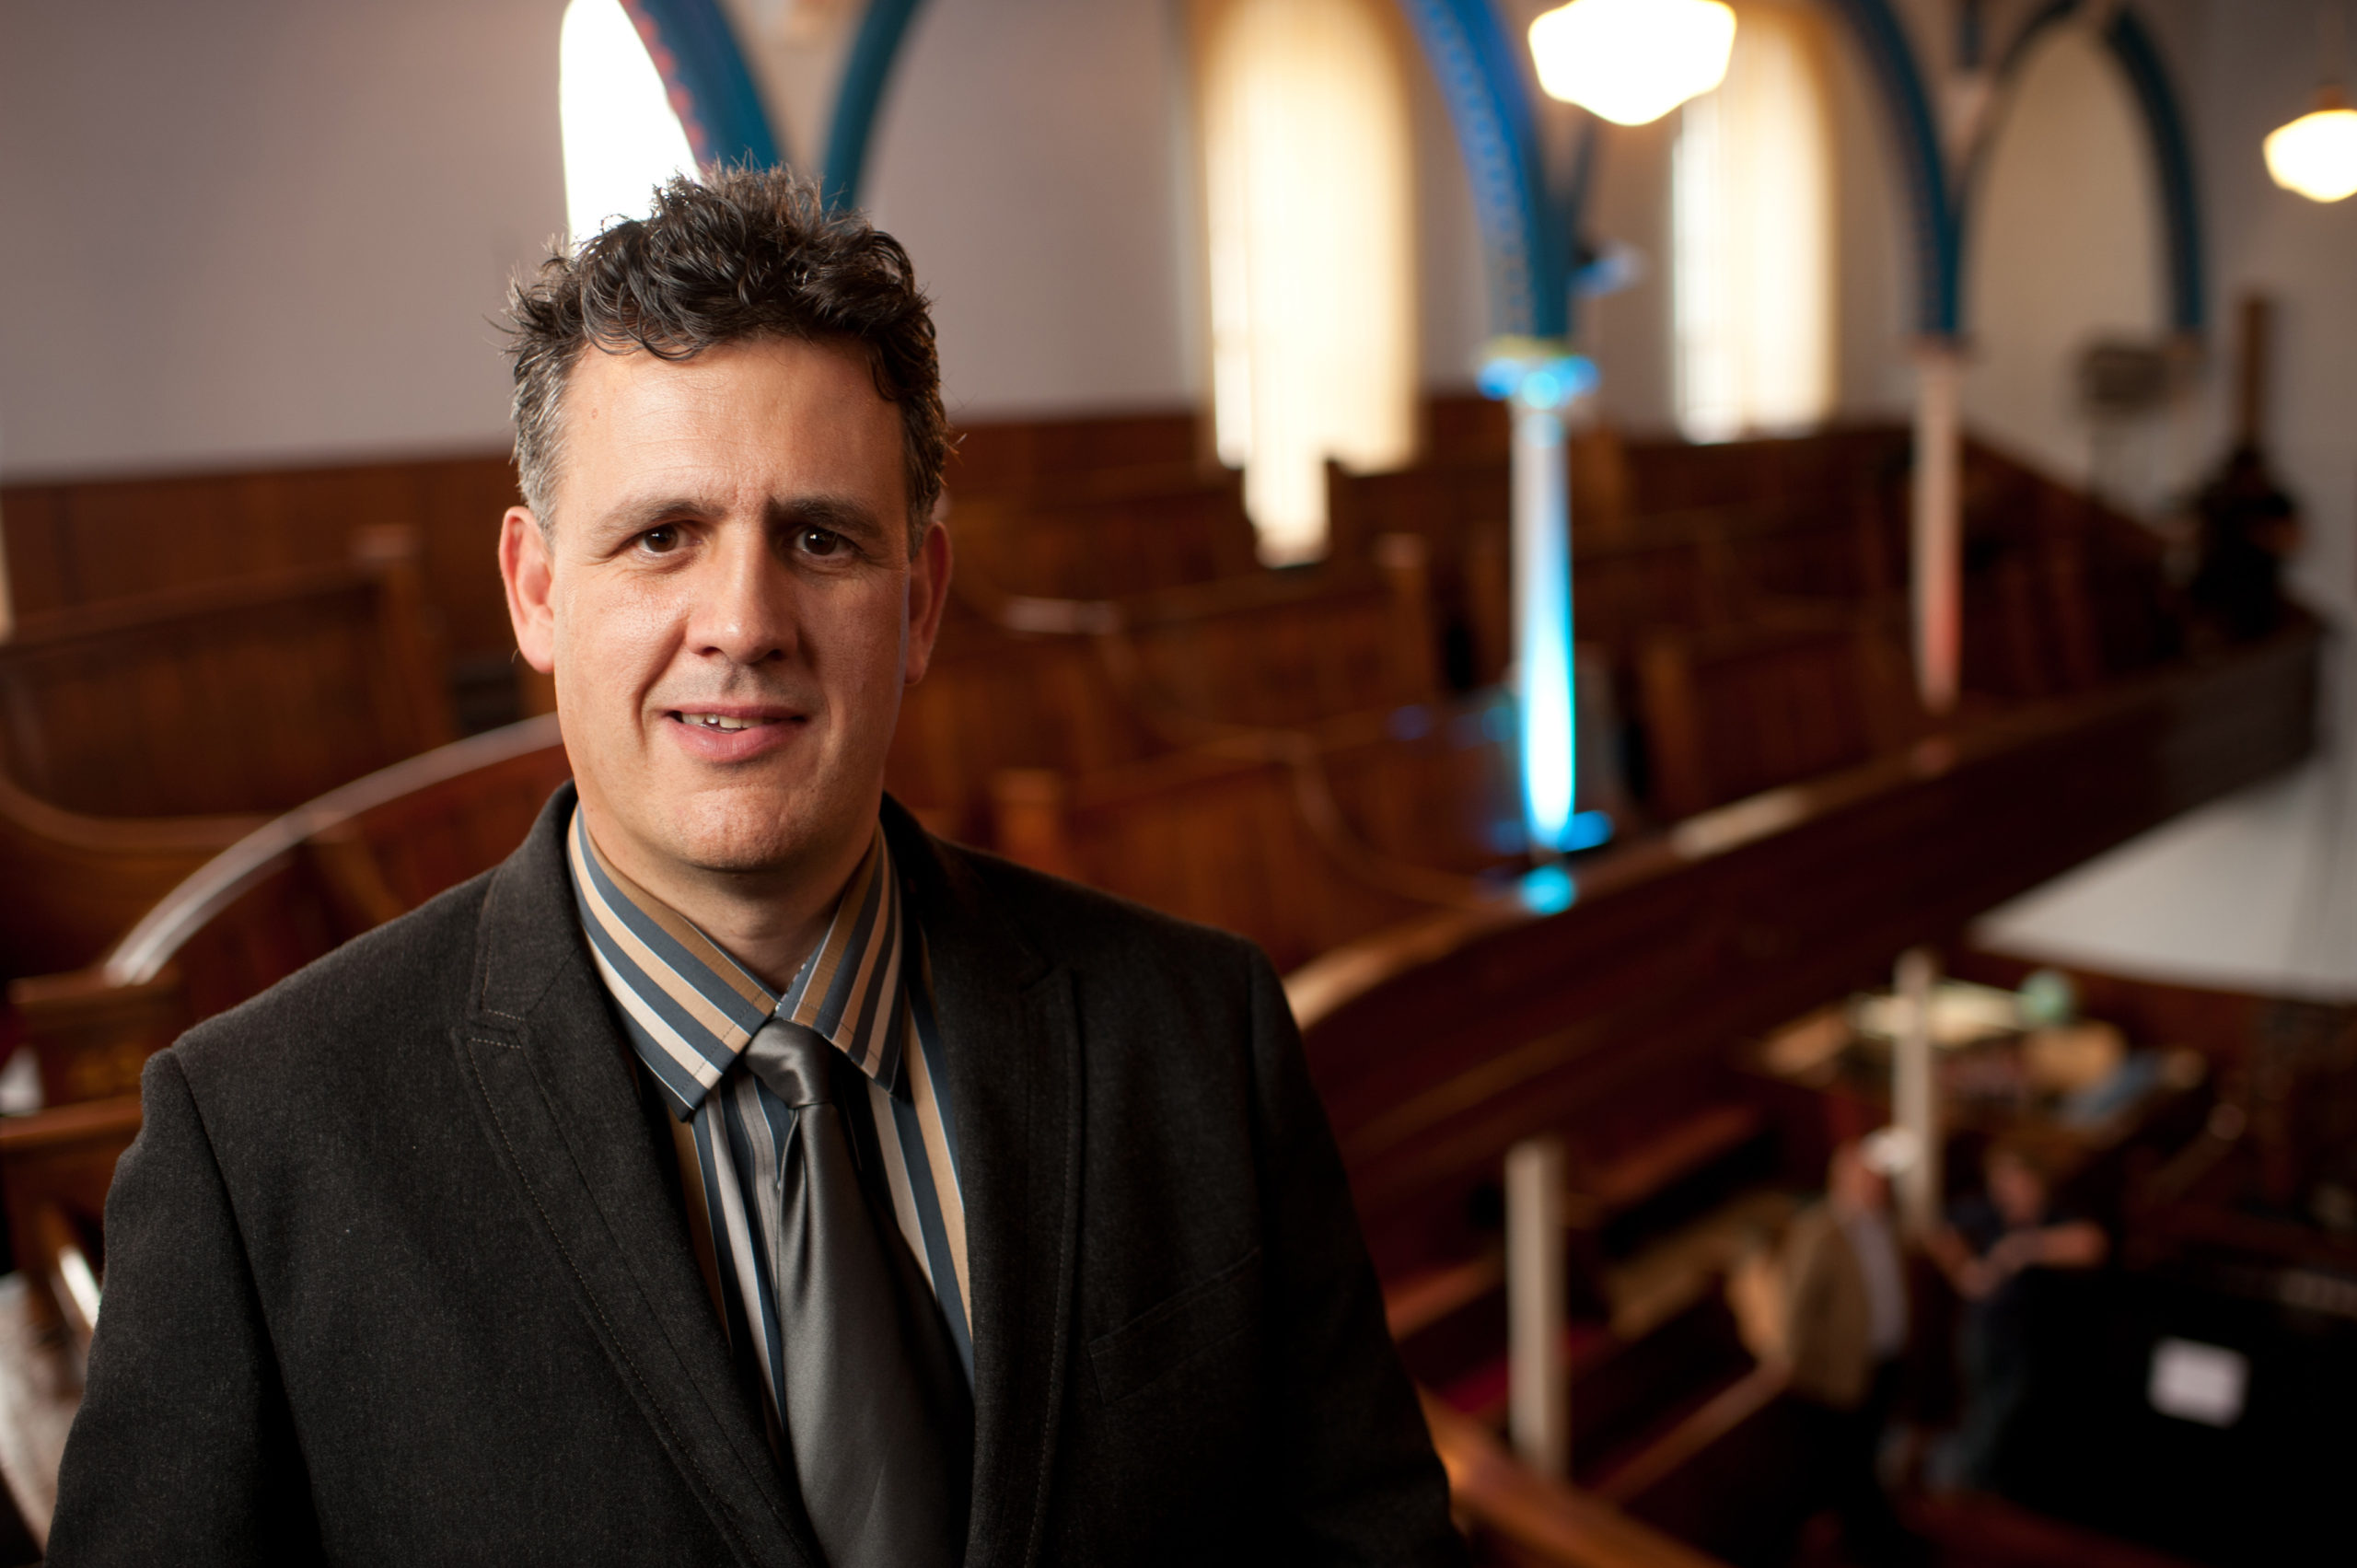 St Dwynwen's Day special on S4C - The programme's presenter, Rhys Meirion